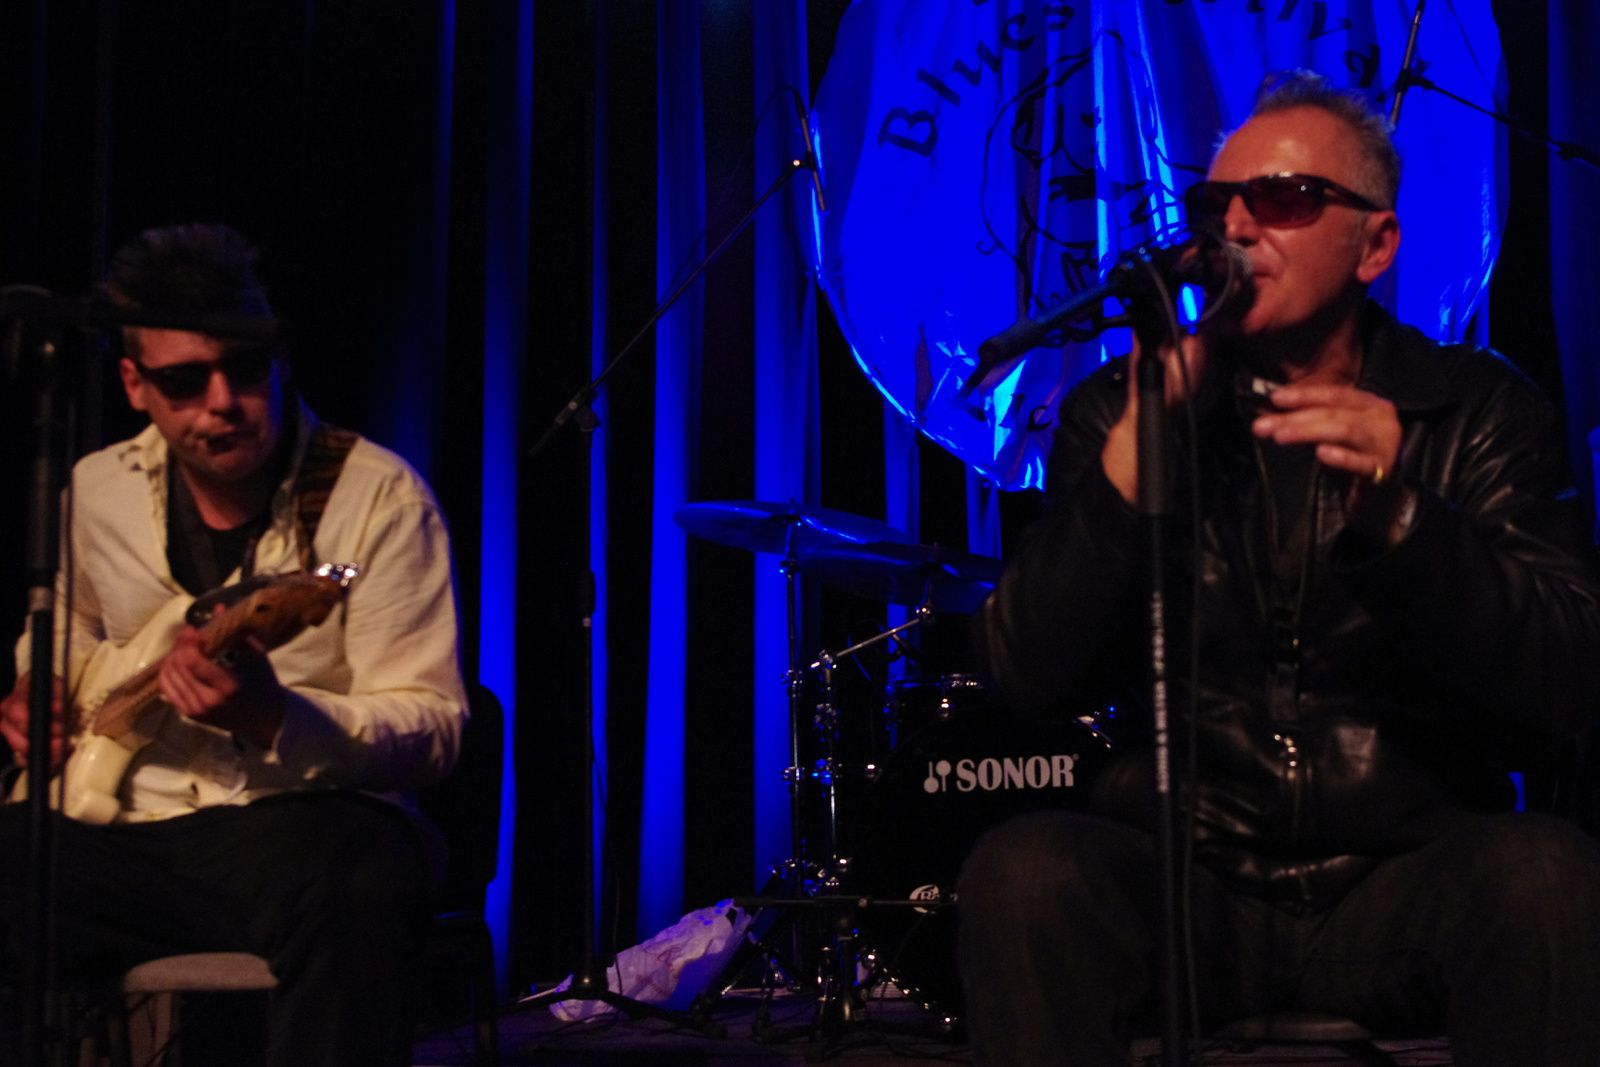 Paul Lamb & Chad Strentz - 19 avril 2014 - Delirium Blues festival, Lichtervelde (B)